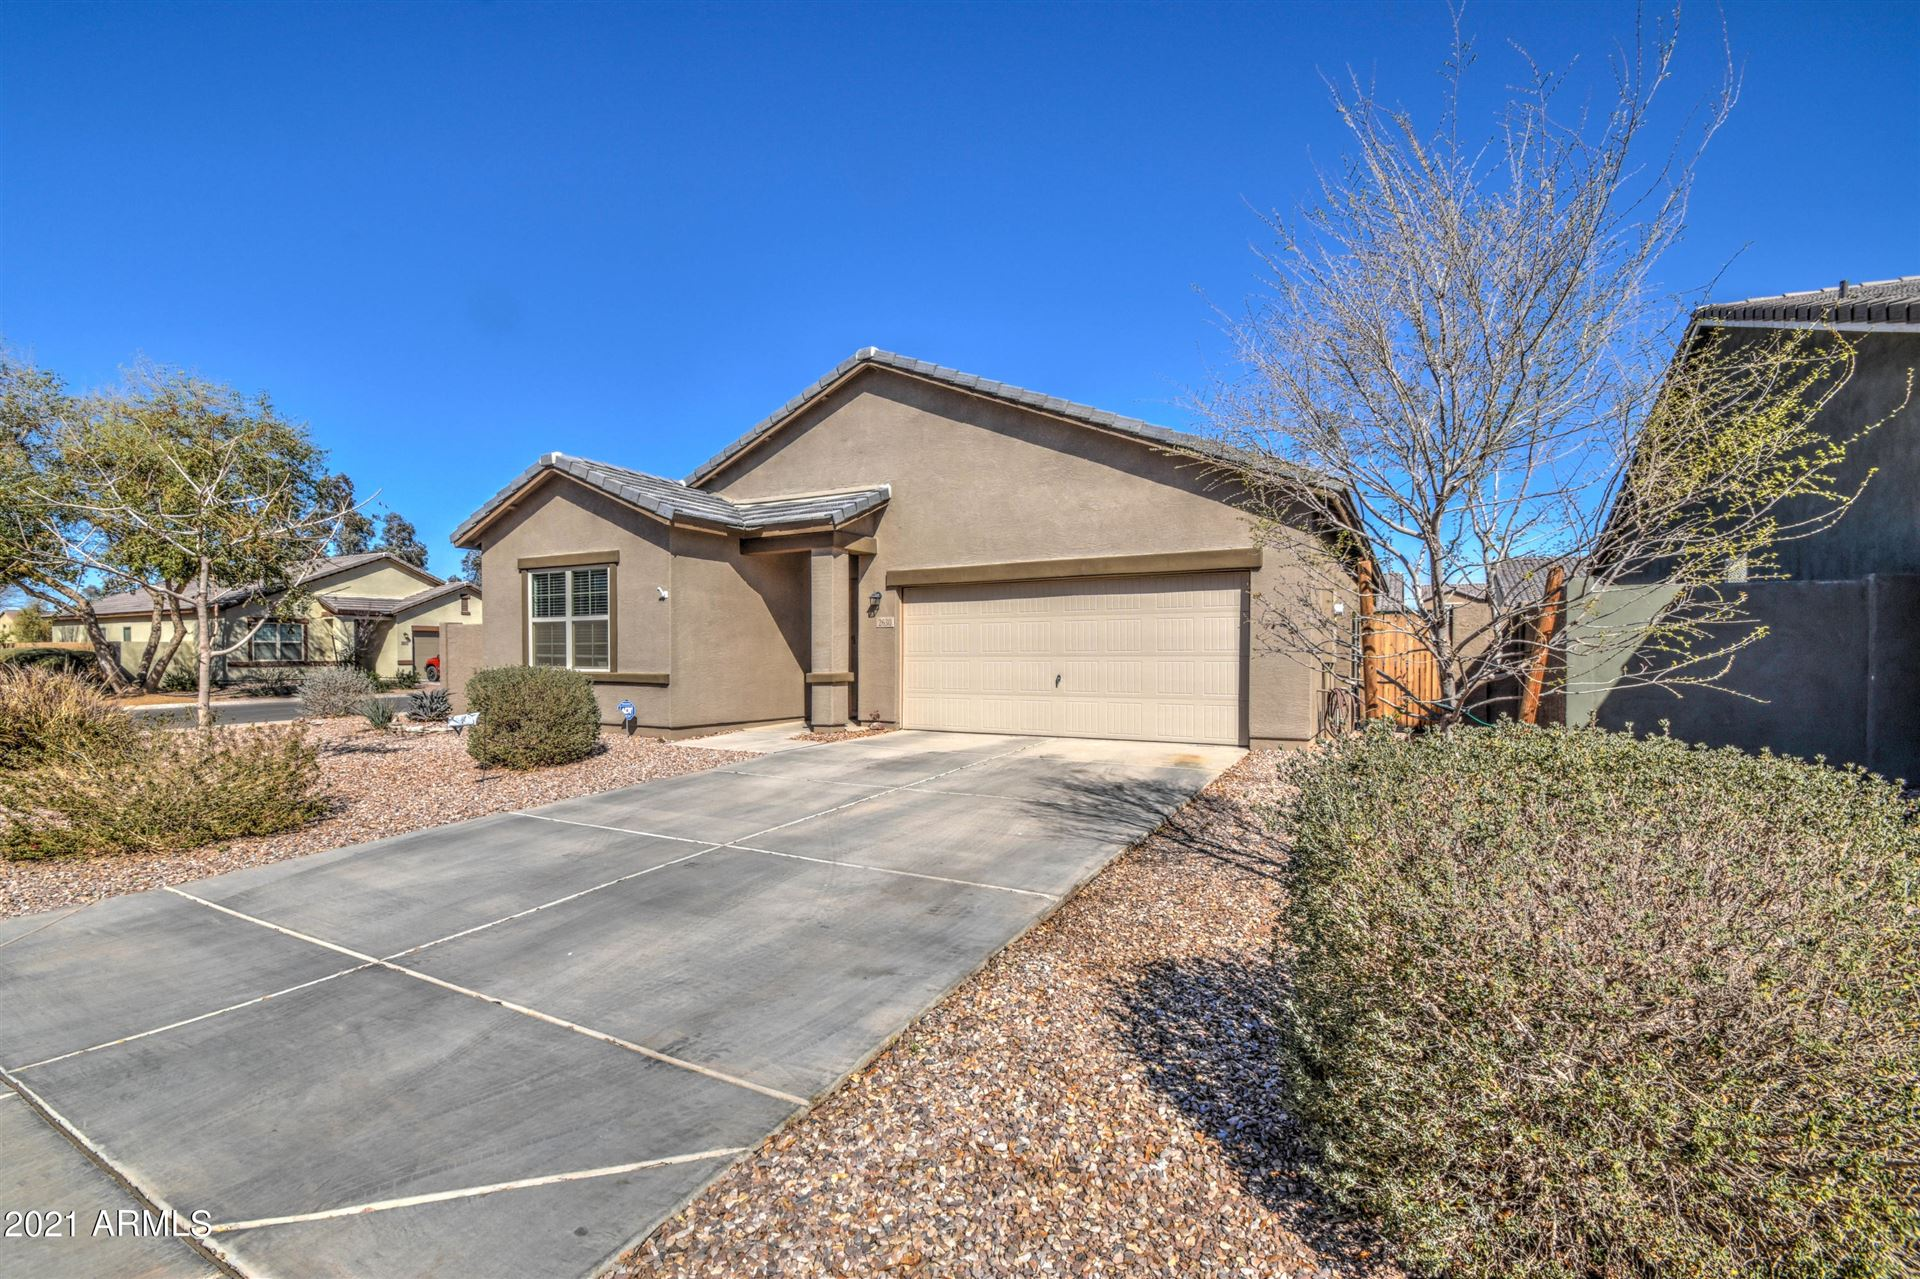 Photo of 2630 E OMEGA Drive, San Tan Valley, AZ 85143 (MLS # 6203065)